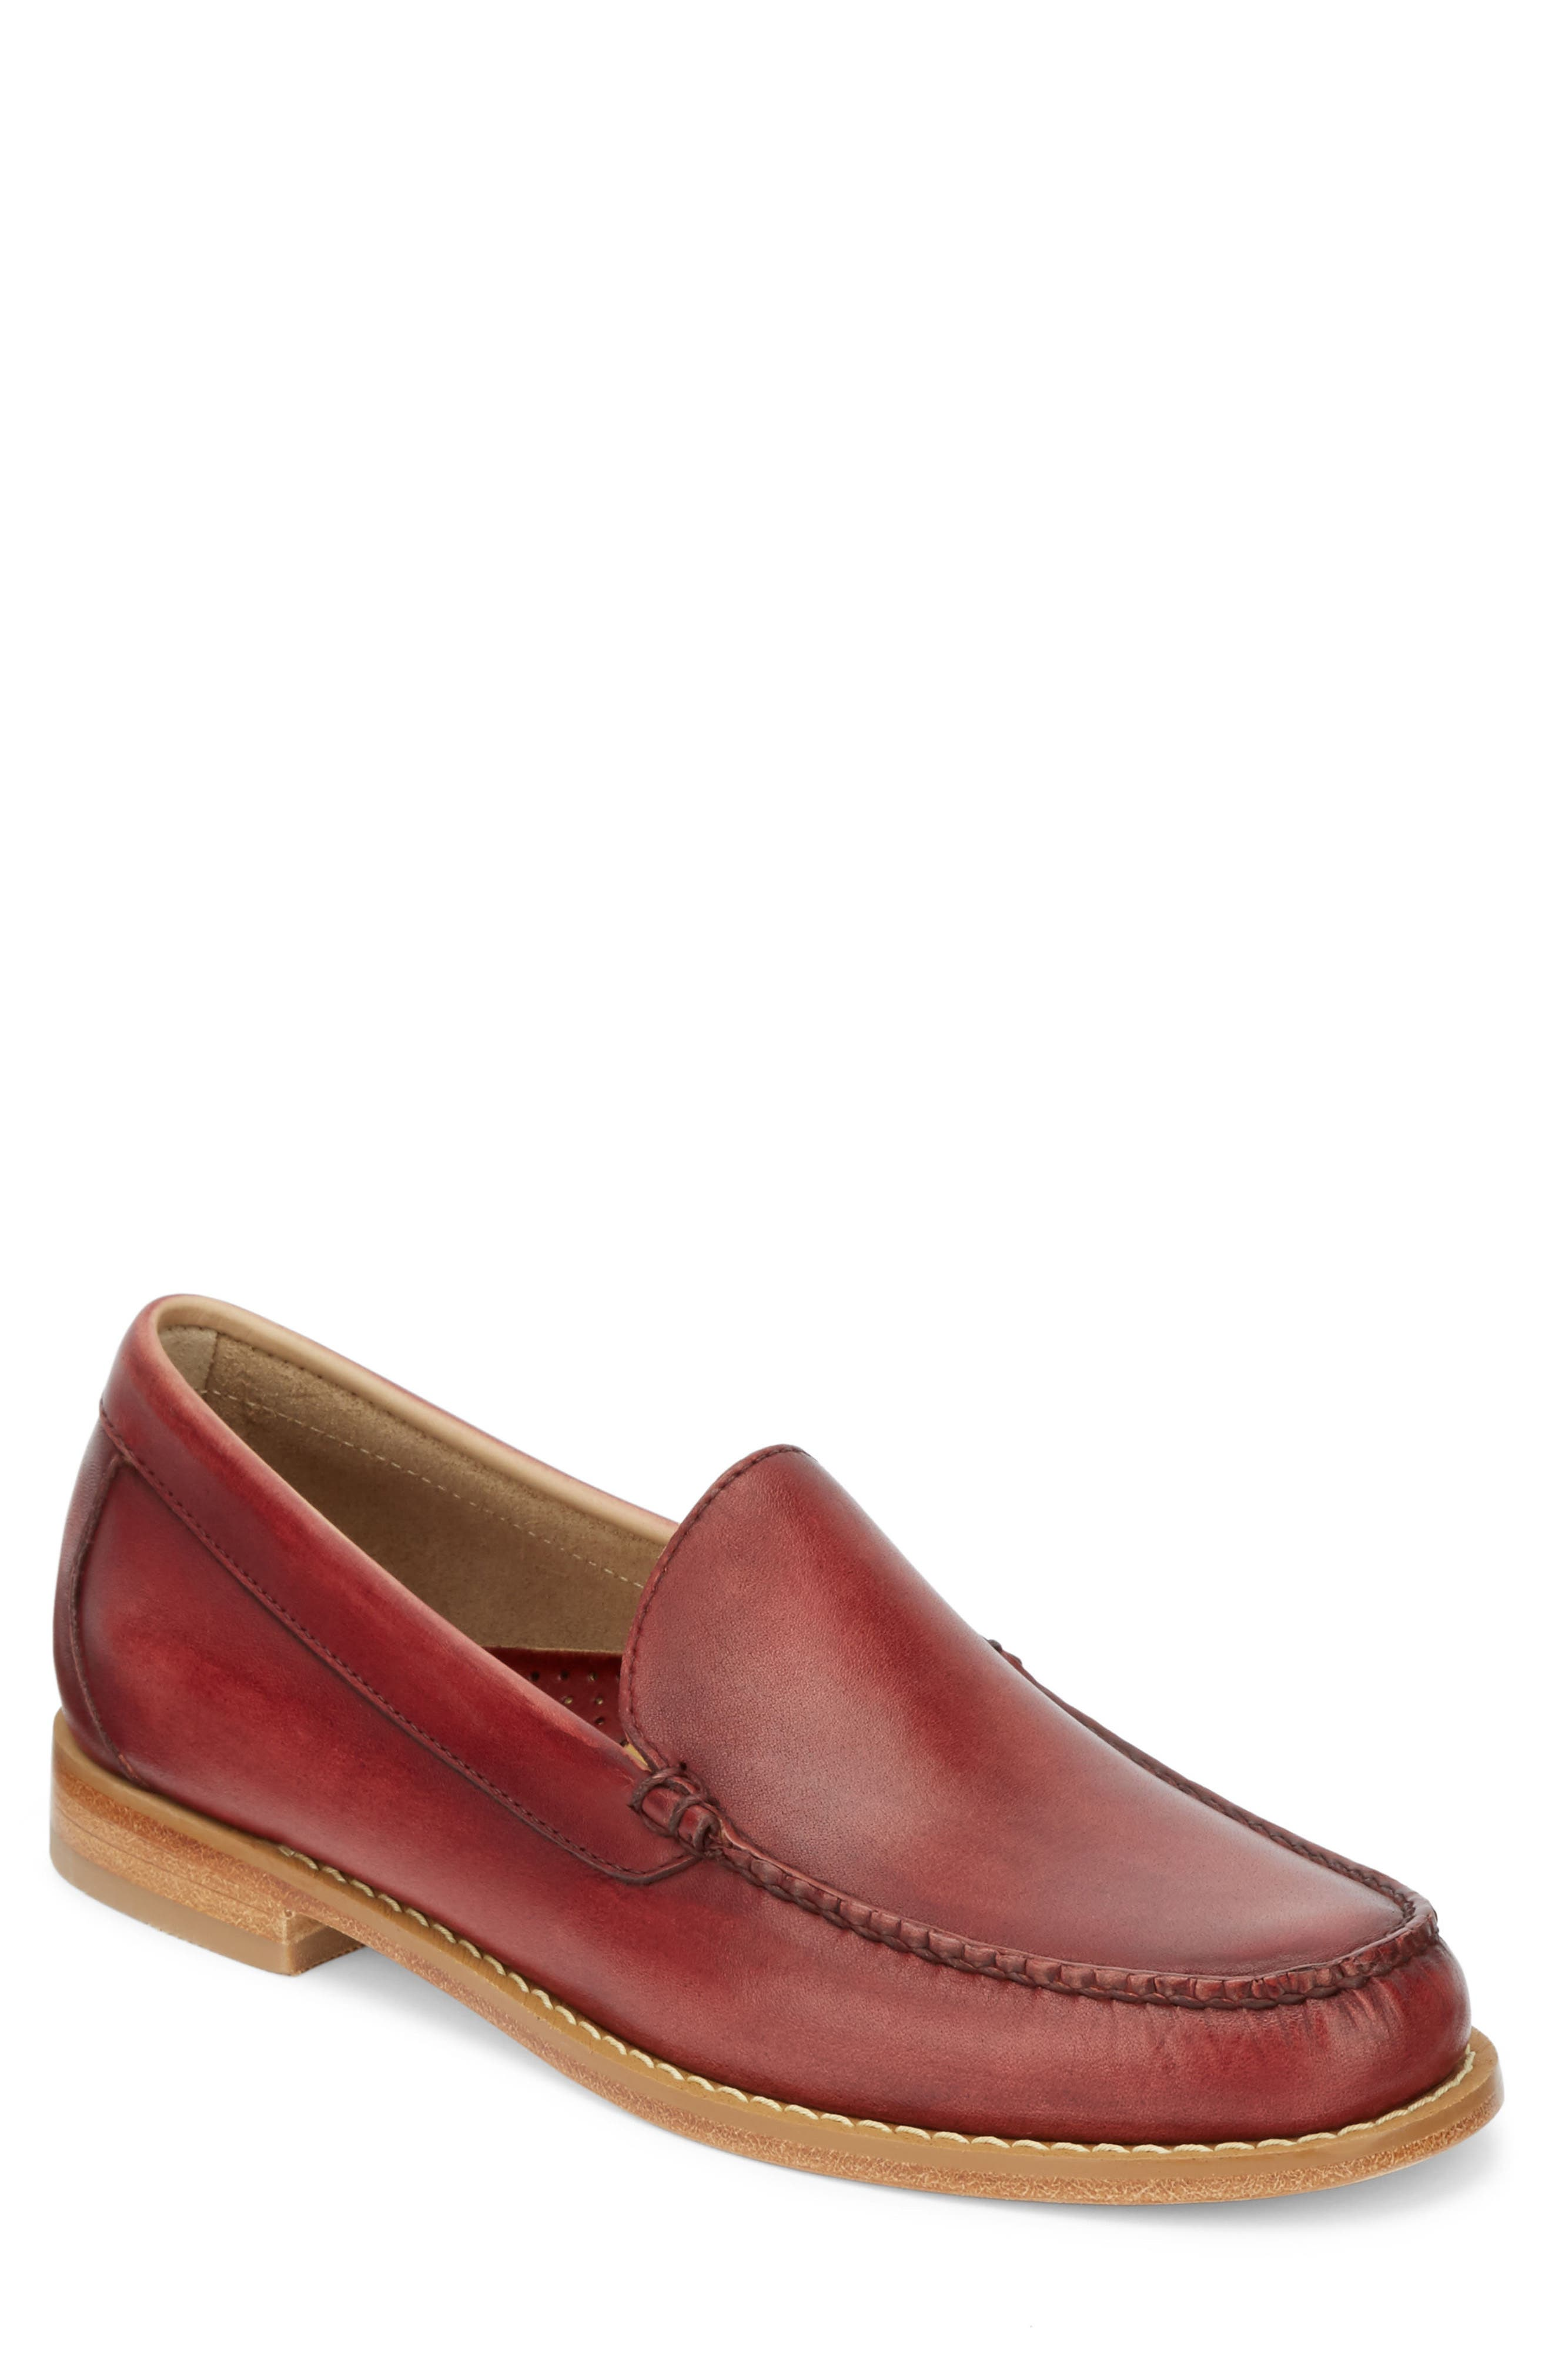 Moc Toe Loafer,                             Main thumbnail 1, color,                             RED LEATHER